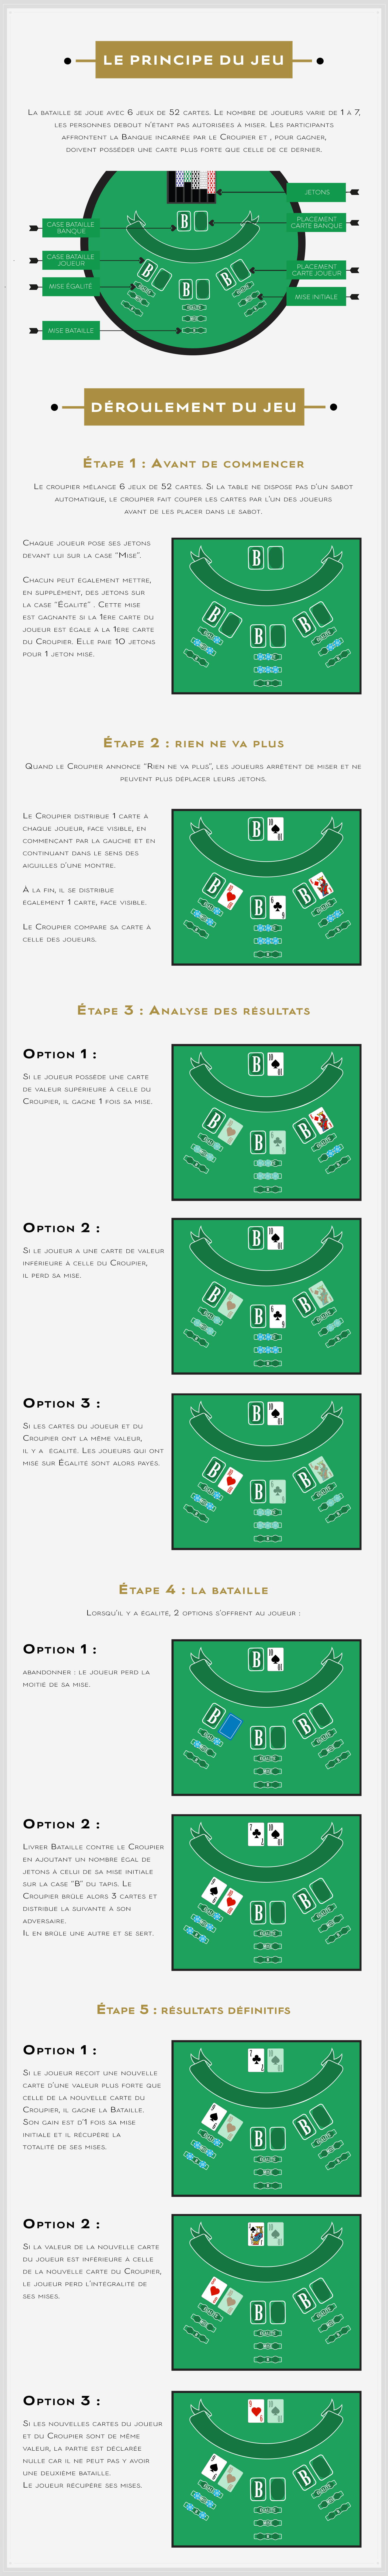 Infographie Bataille